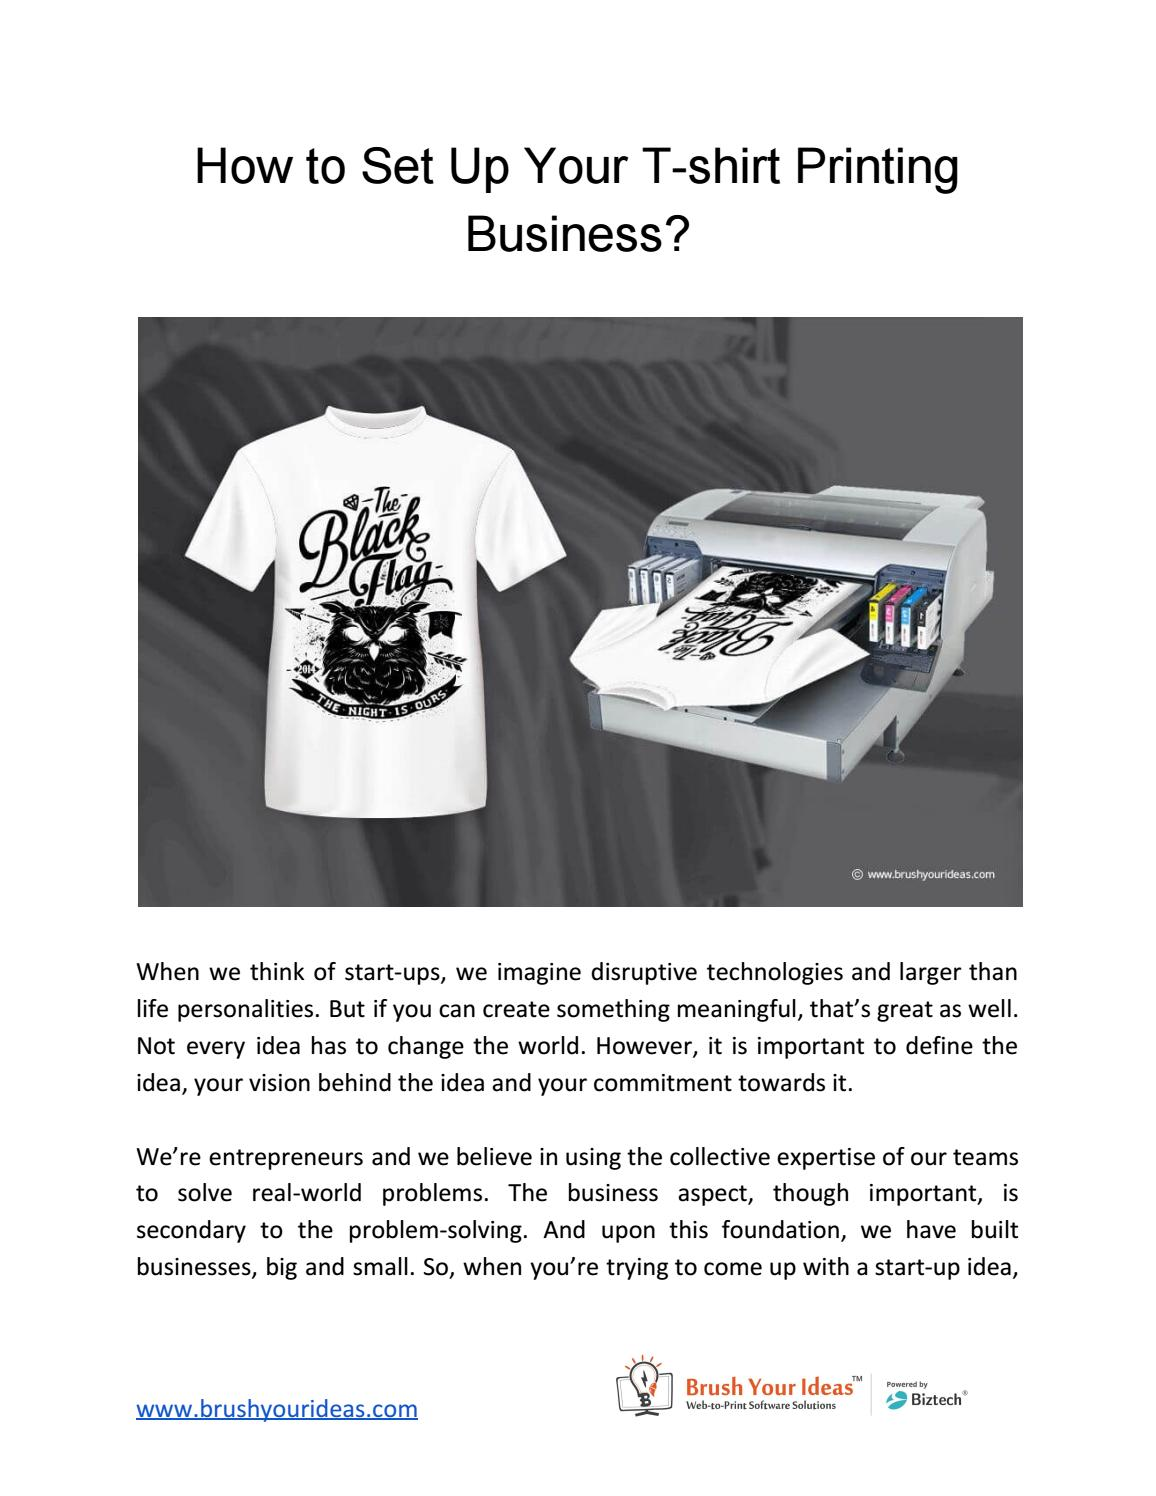 How To Start Tshirt Design Business